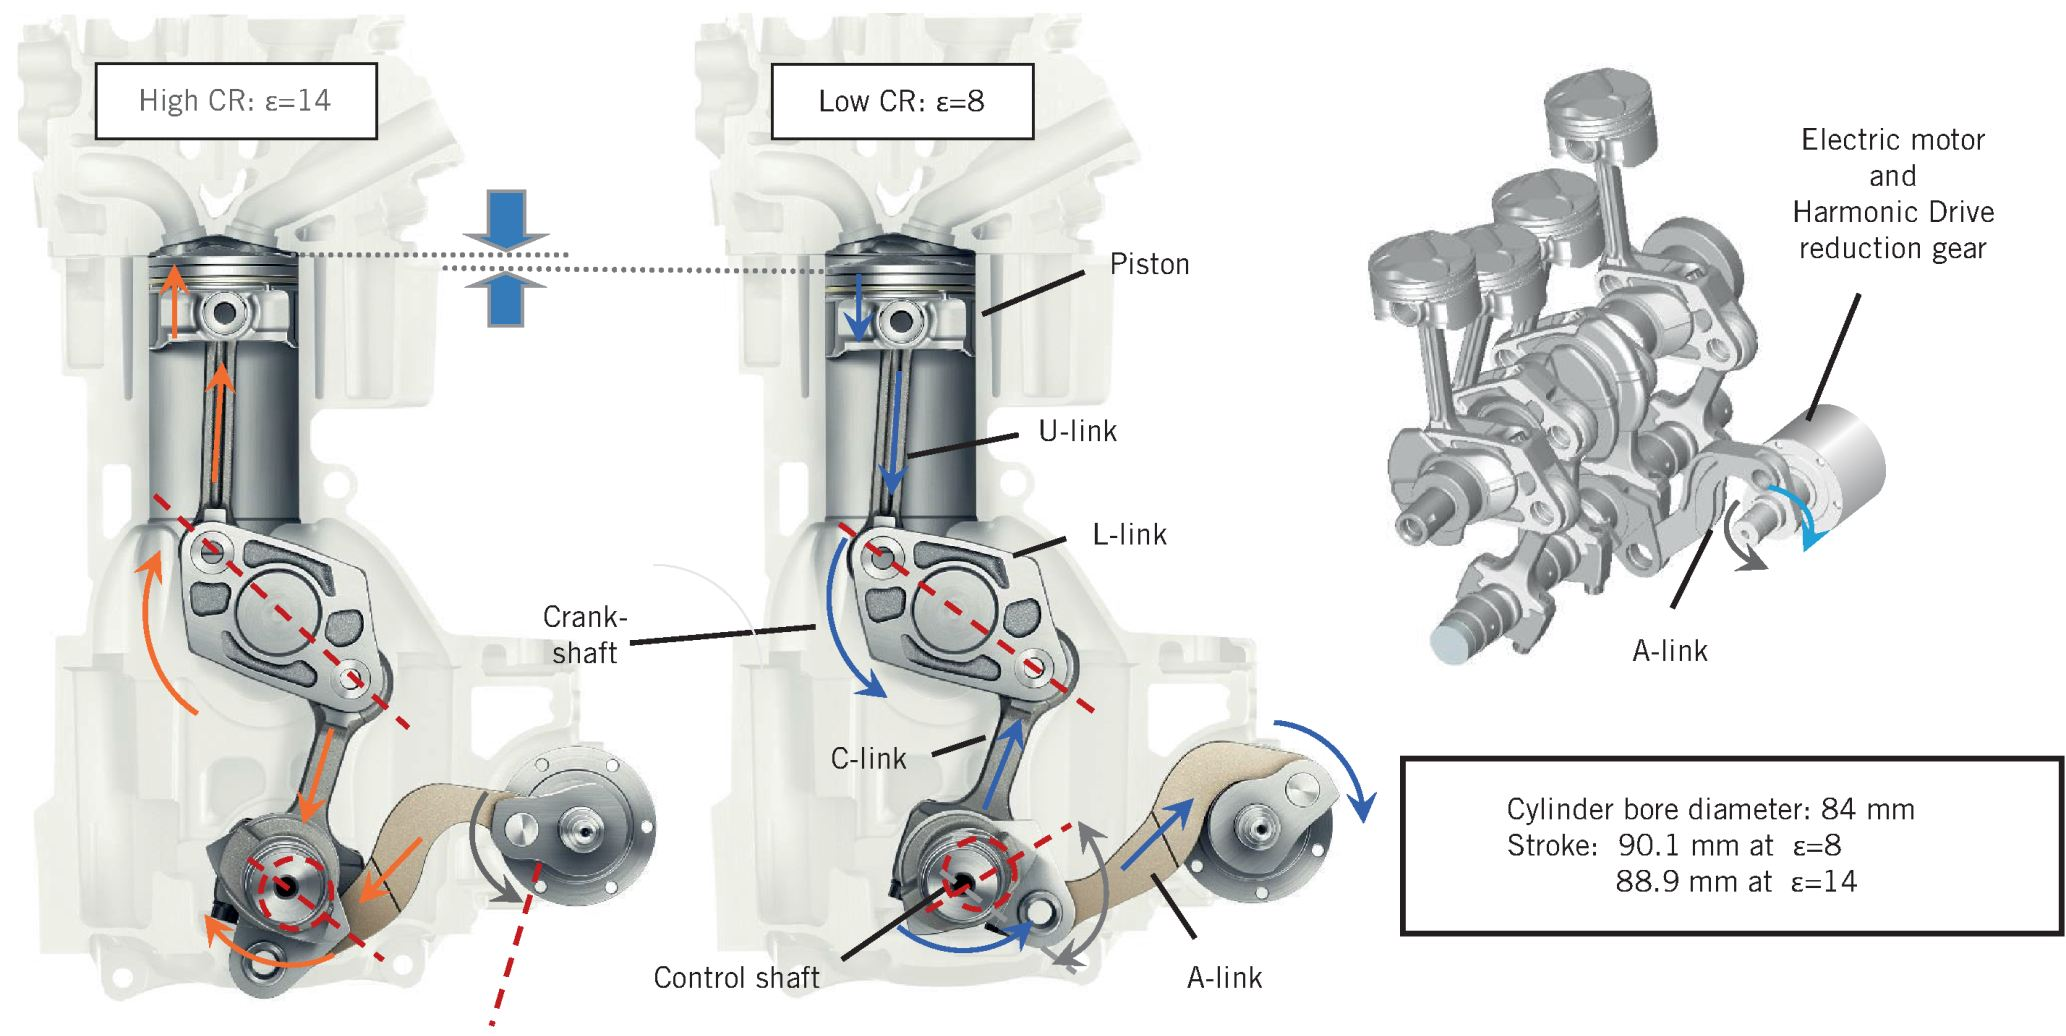 The New Nissan Vc Turbo With Variable Compression Ratio Springerlink V6 3000 Engine Diagram Open Image In Window